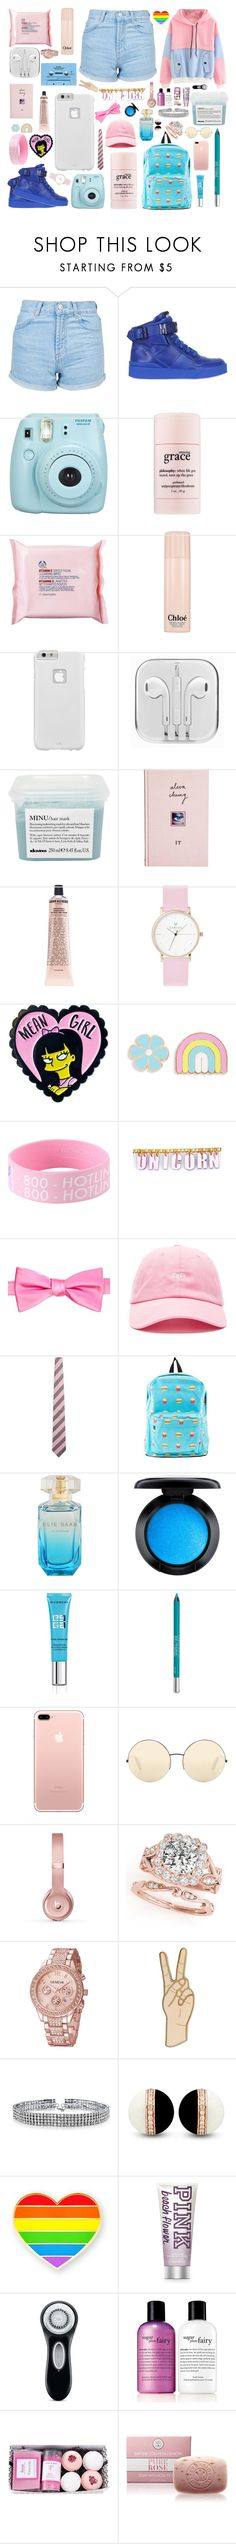 """So Pink"" by localhugdealer ❤ liked on Polyvore featuring Topshop, Moschino, Fujifilm, philosophy, The Body Shop, Chloé, Case-Mate, CASSETTE, Davines and ASOS"